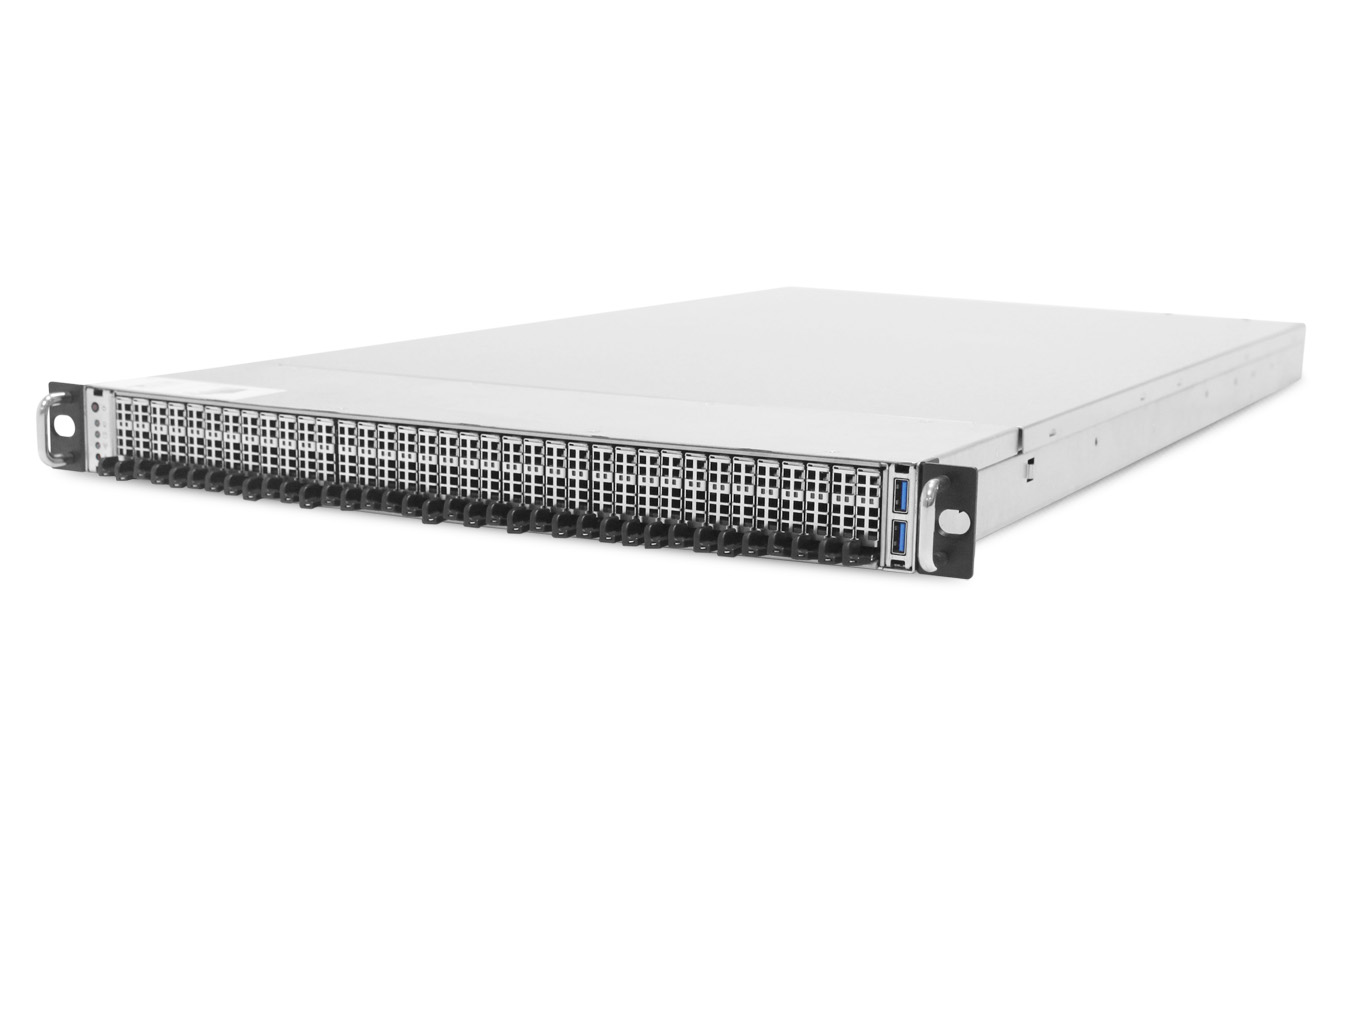 ServerDirect 1U Server, 36x M.3 NVME bays, 2x Intel Silver 4210, 2x 16GB, 1x 240GB SSD, 12x 8TB NVME Drives (96TB) , 2x GbE LAN, 2x 40/56Gb Infiniband, Redundant PSU